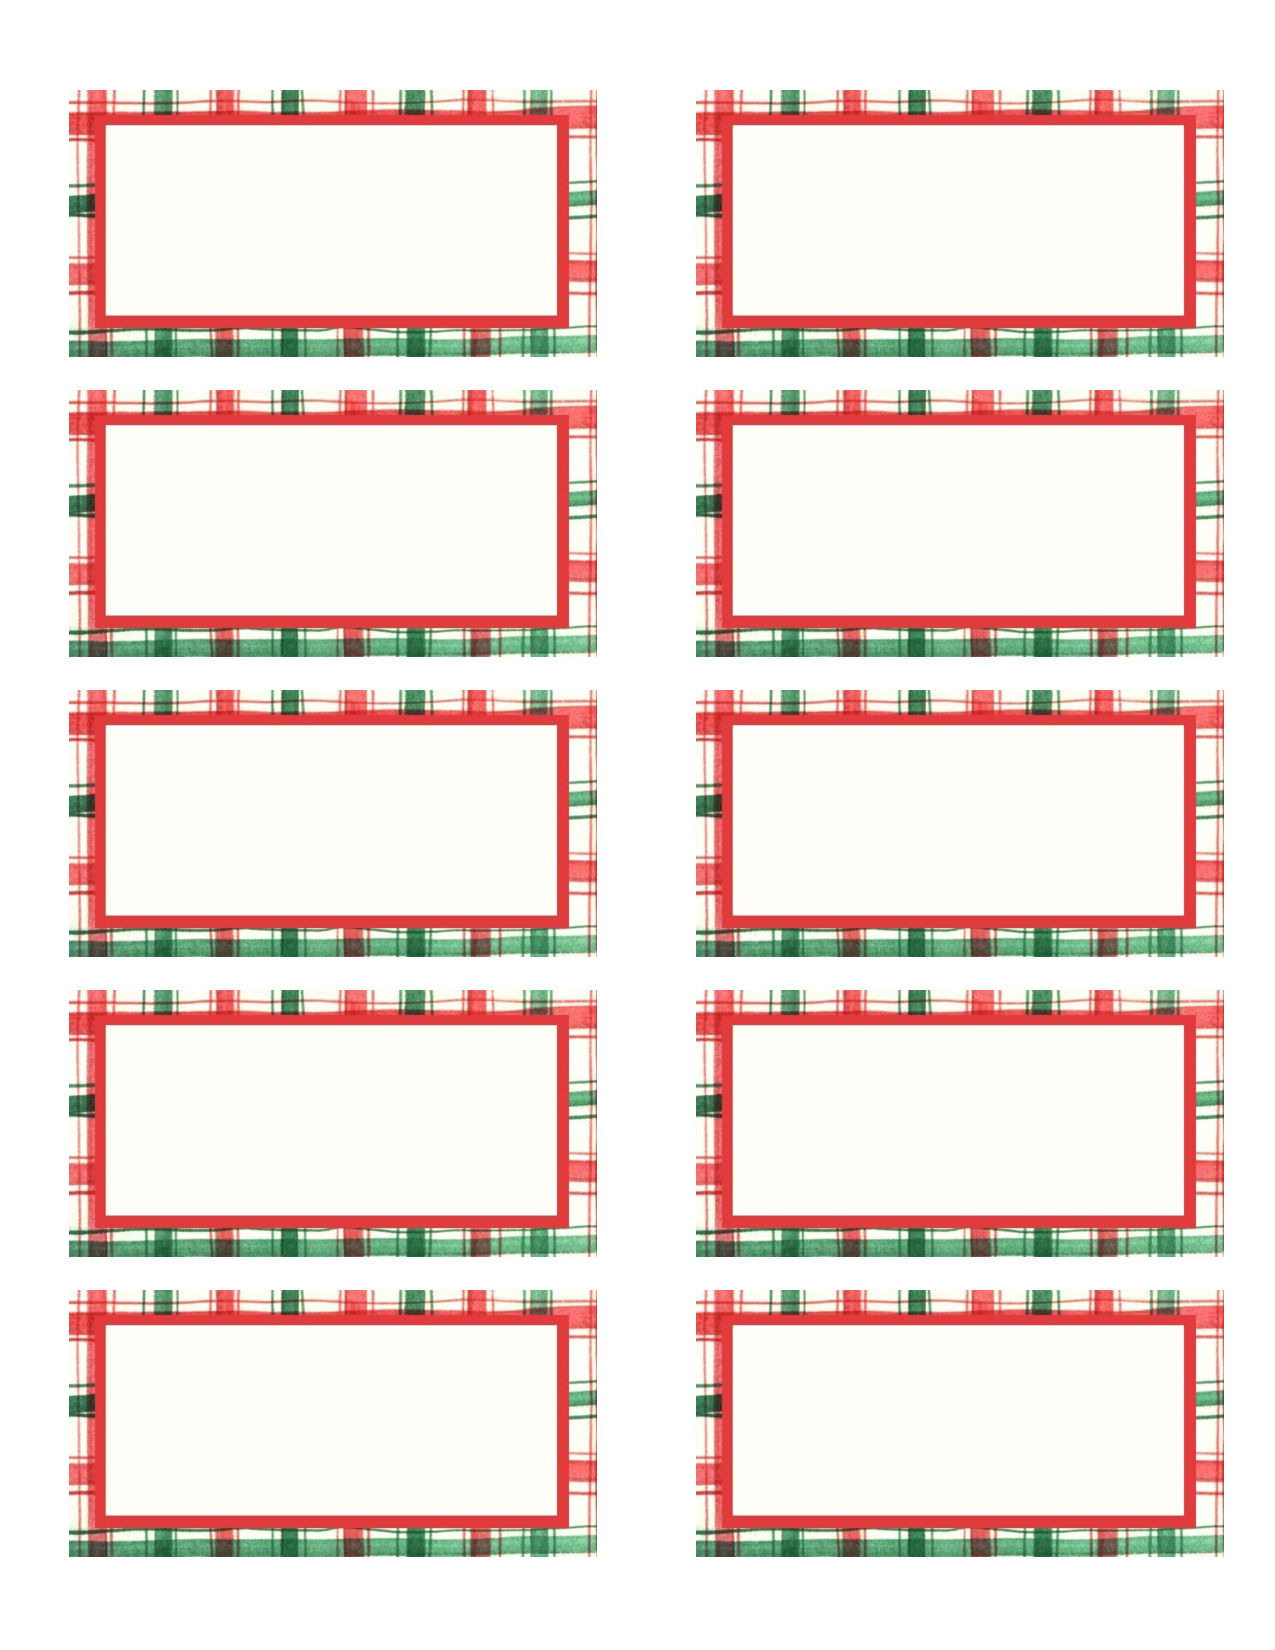 Free+Avery+Christmas+Tag+Label+Template | The Teacher In Me - Free Printable Christmas Address Labels Avery 5160